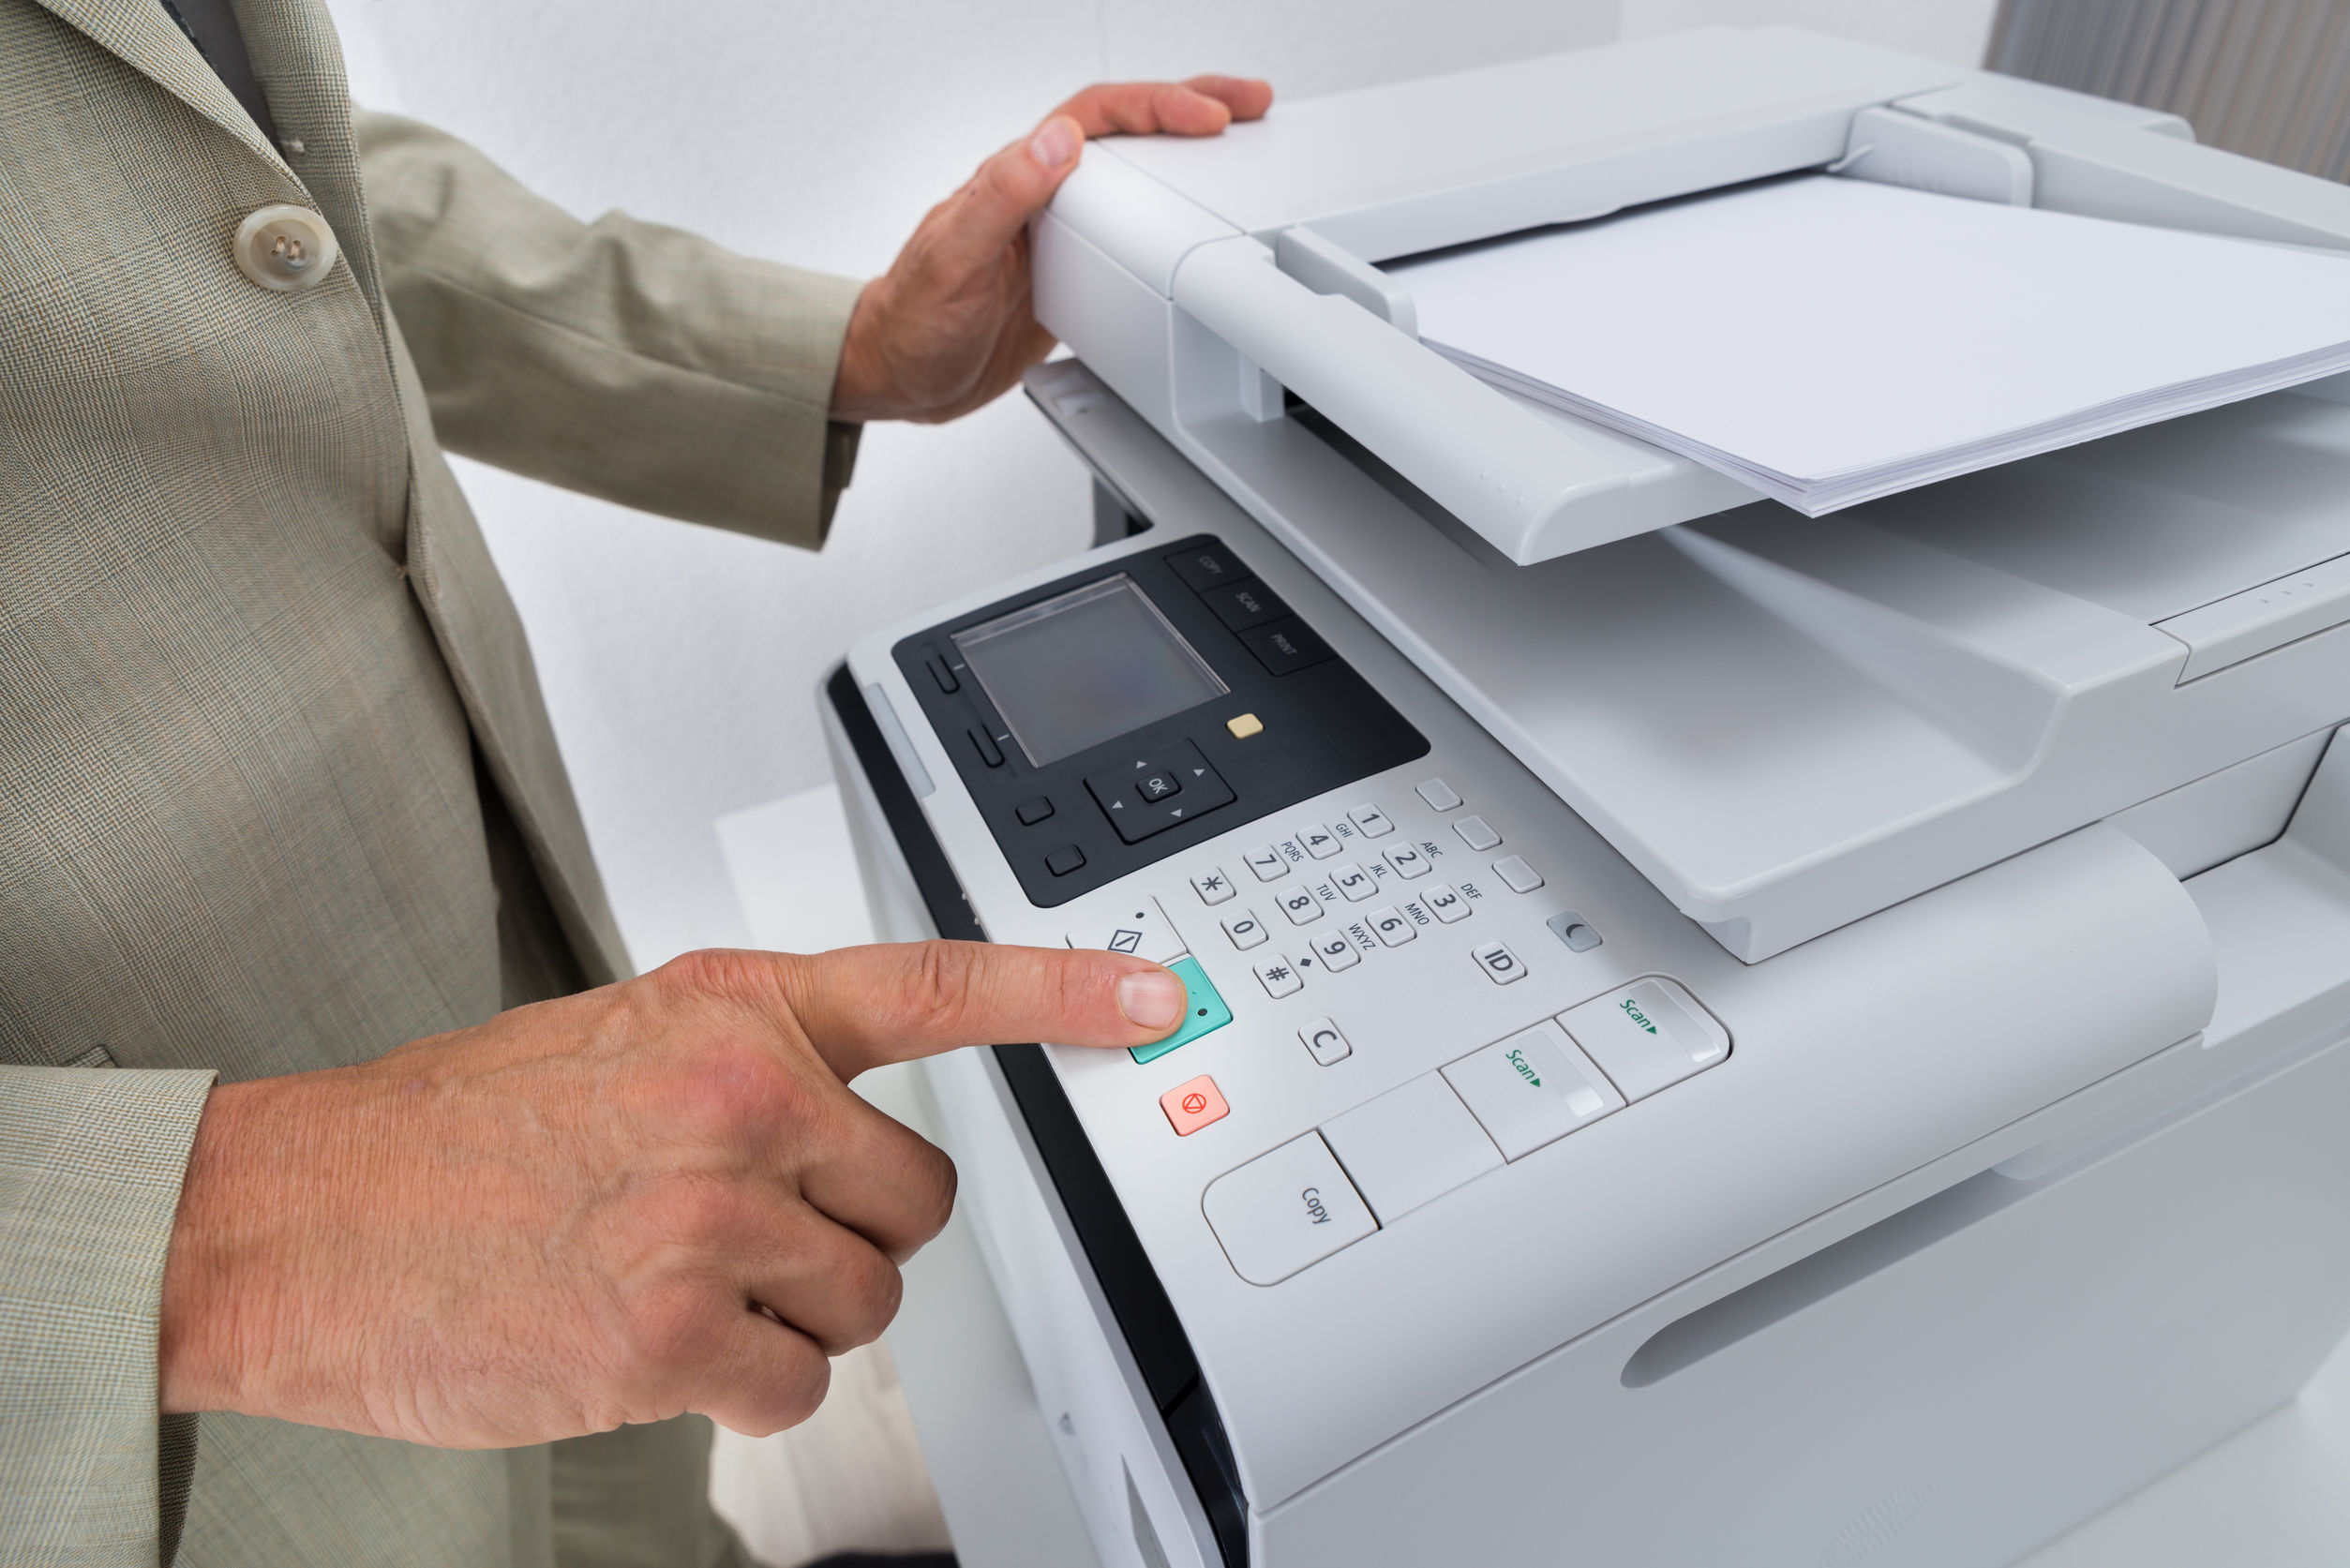 Midsection side view of businessman pressing printer's button in office